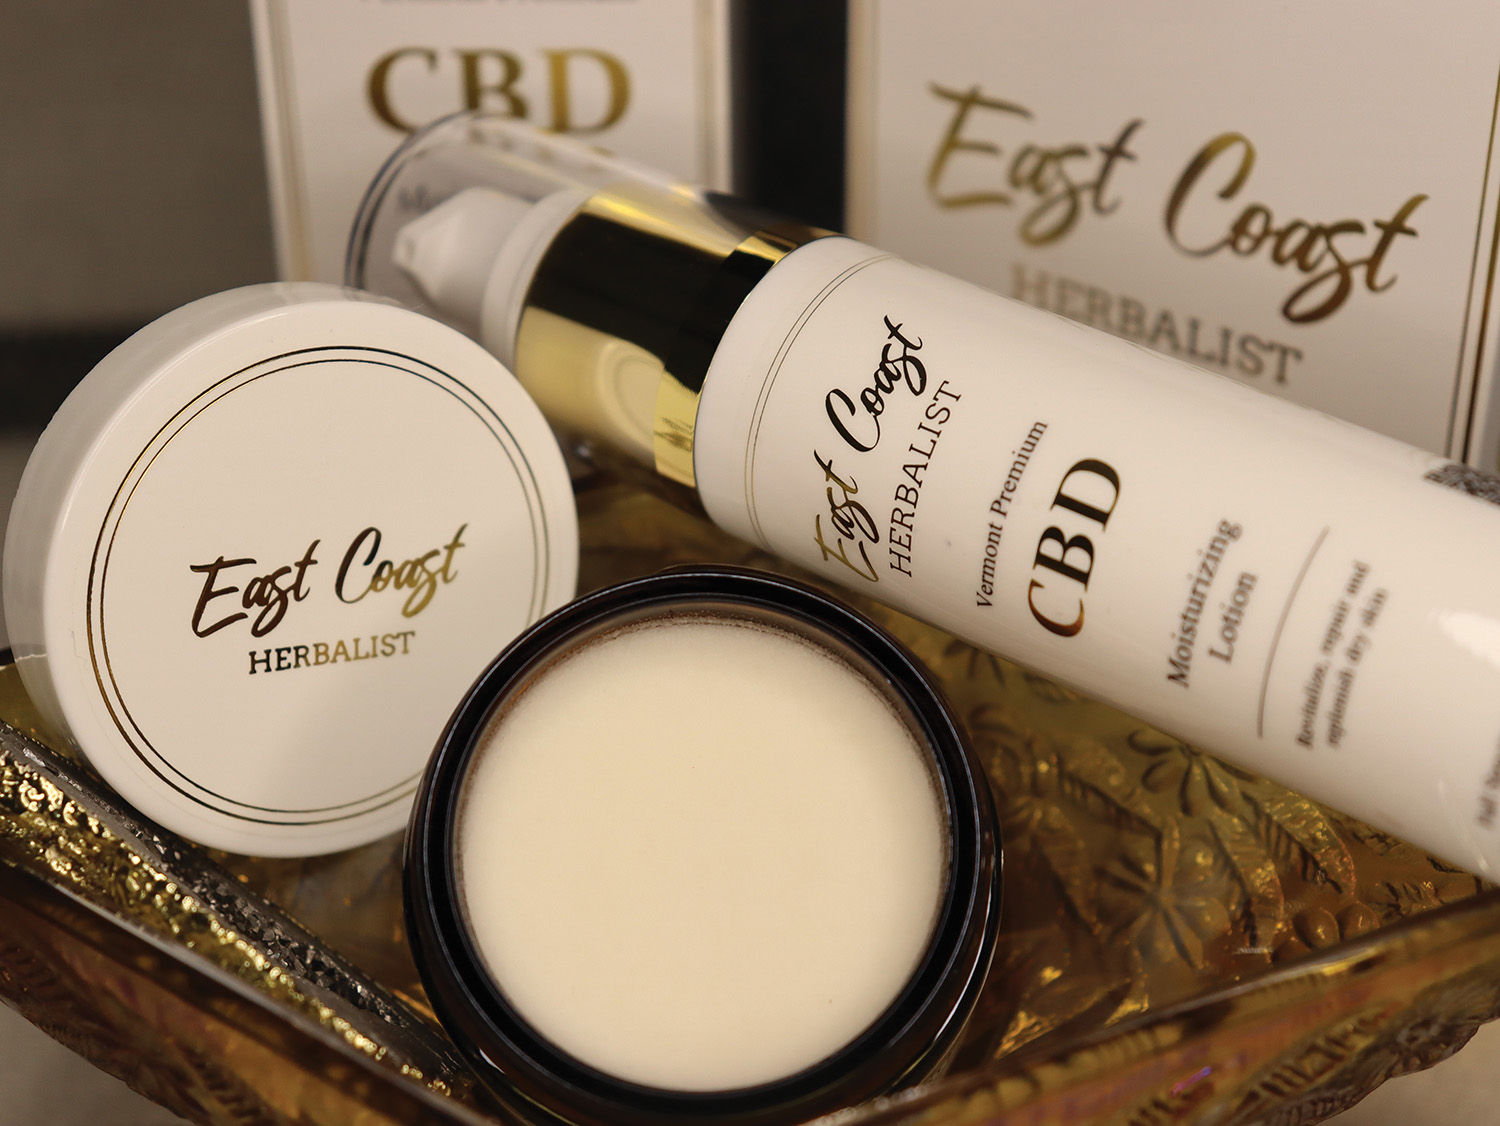 East Coast Herbalist Transdermal Lotion and Lemongrass Salve from CBD Releaf Center